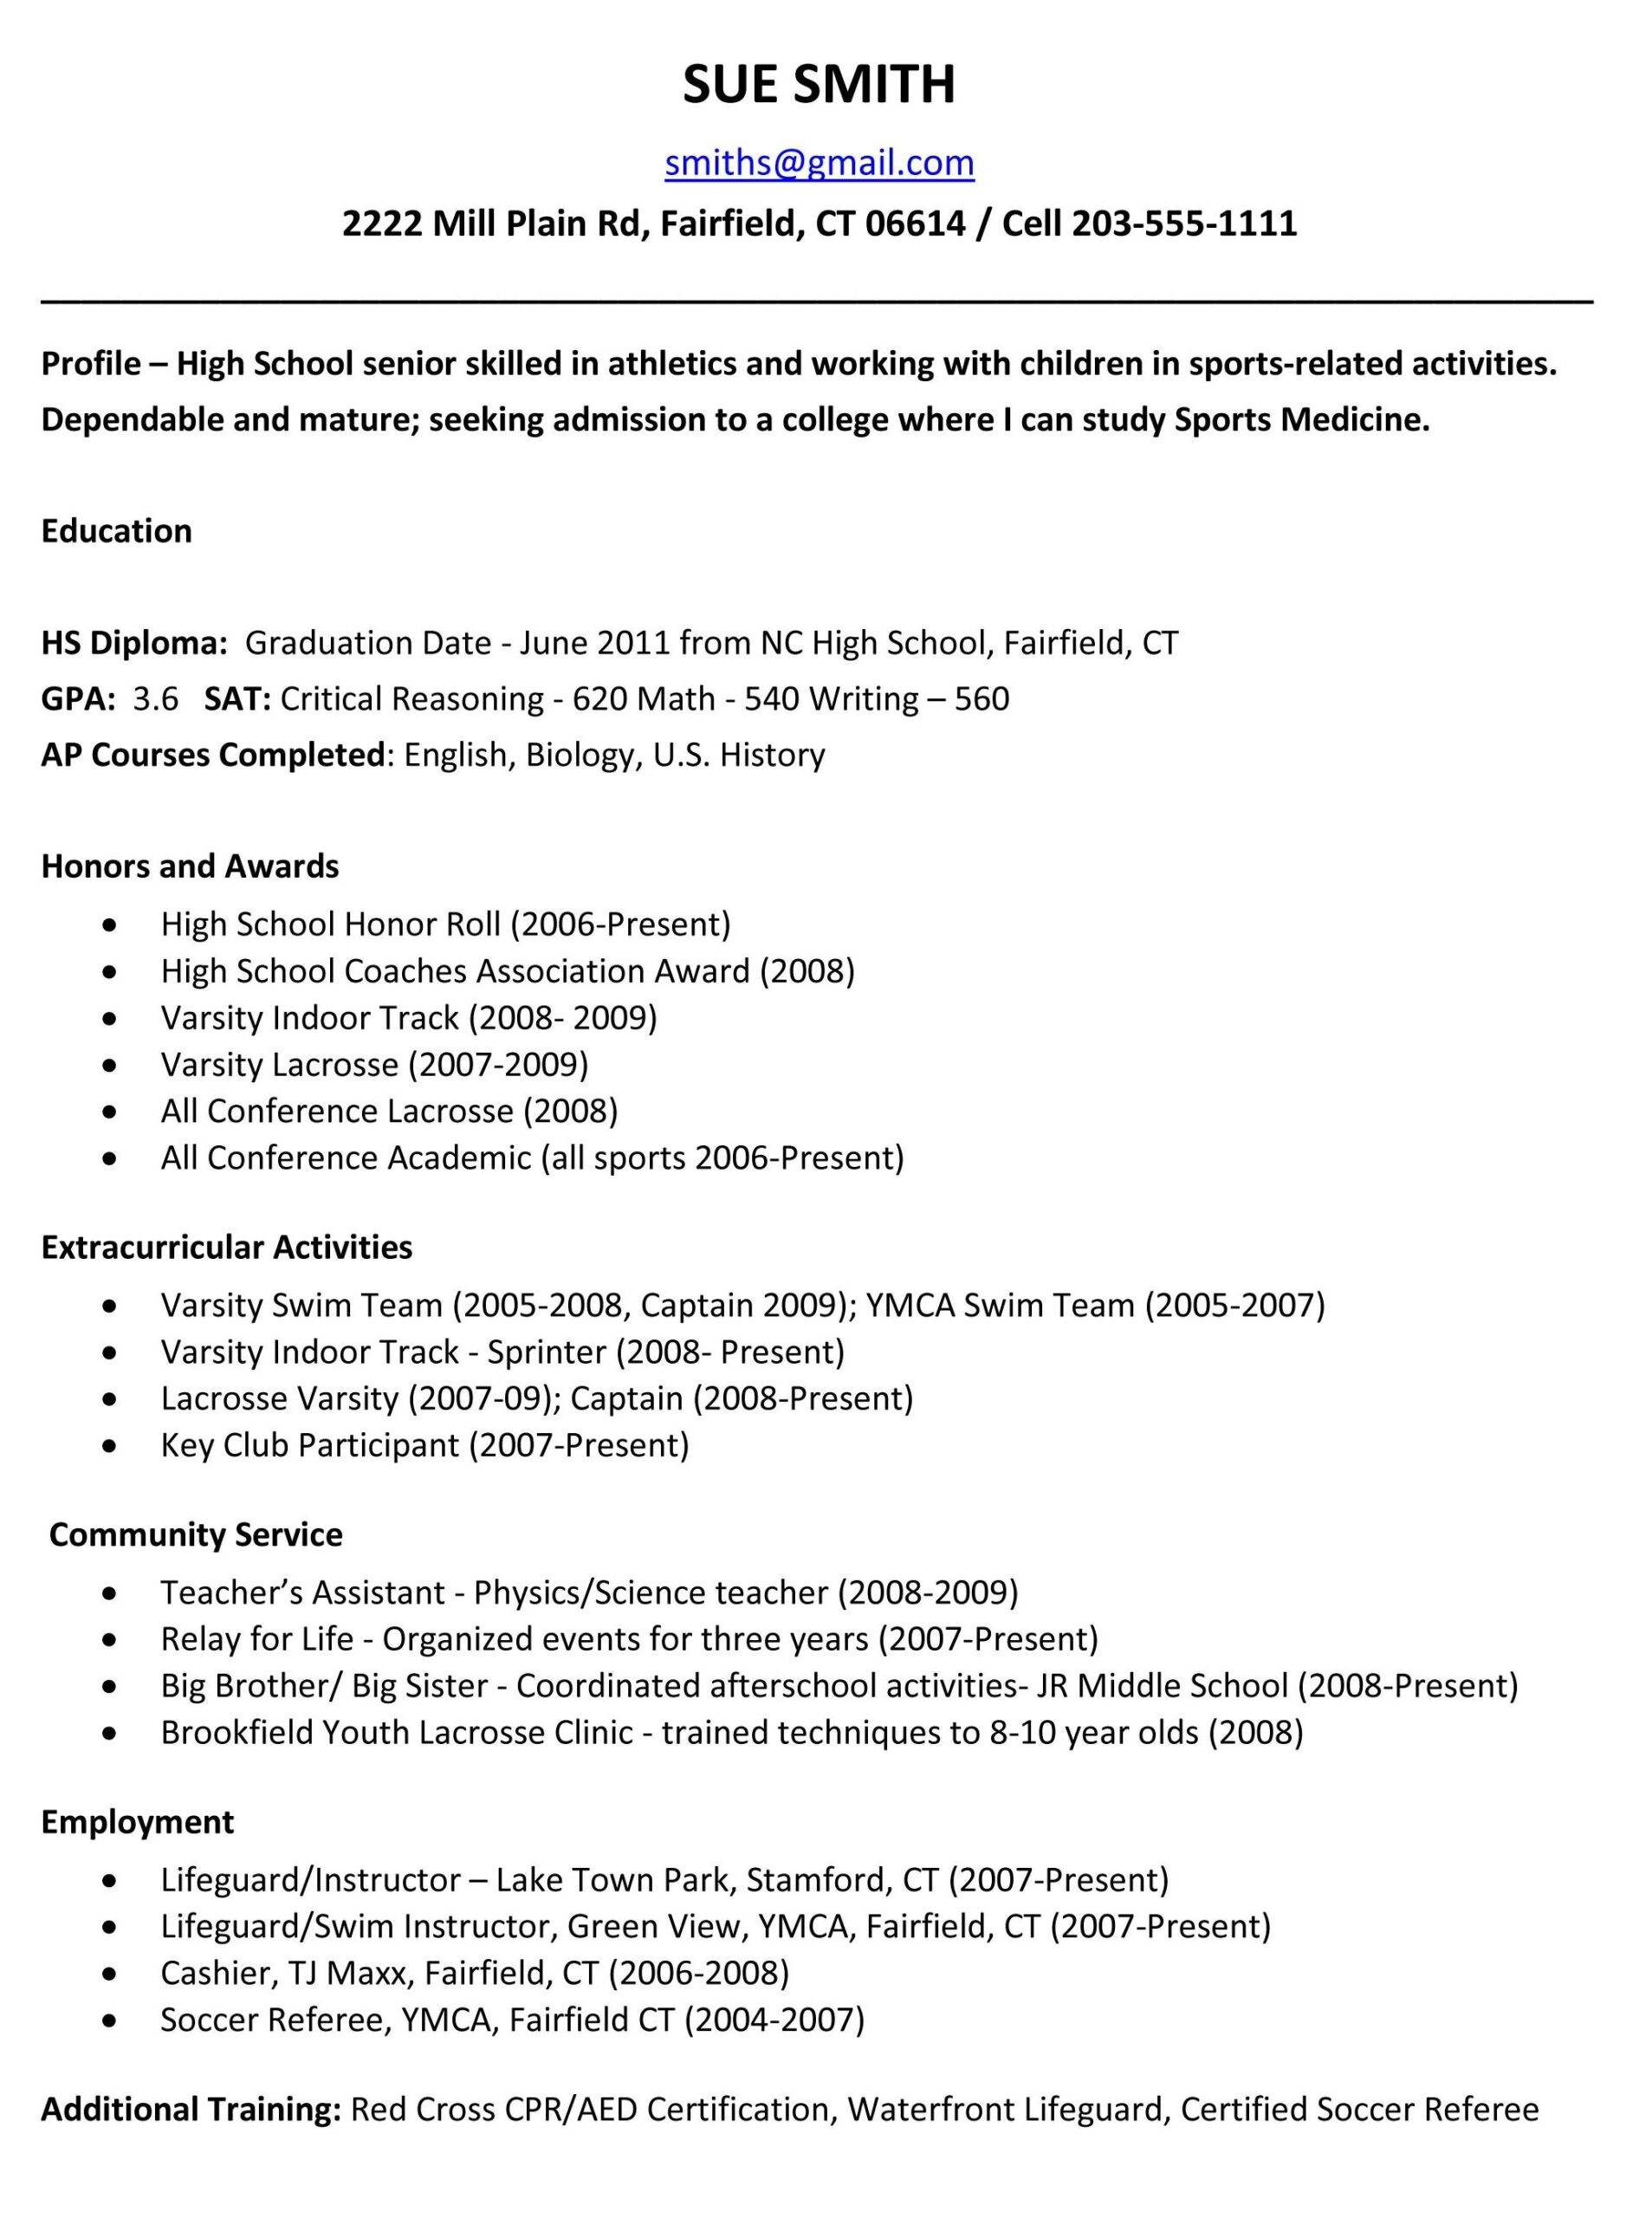 sample resumes high school resume template college application best templates Resume Best College Resume Templates